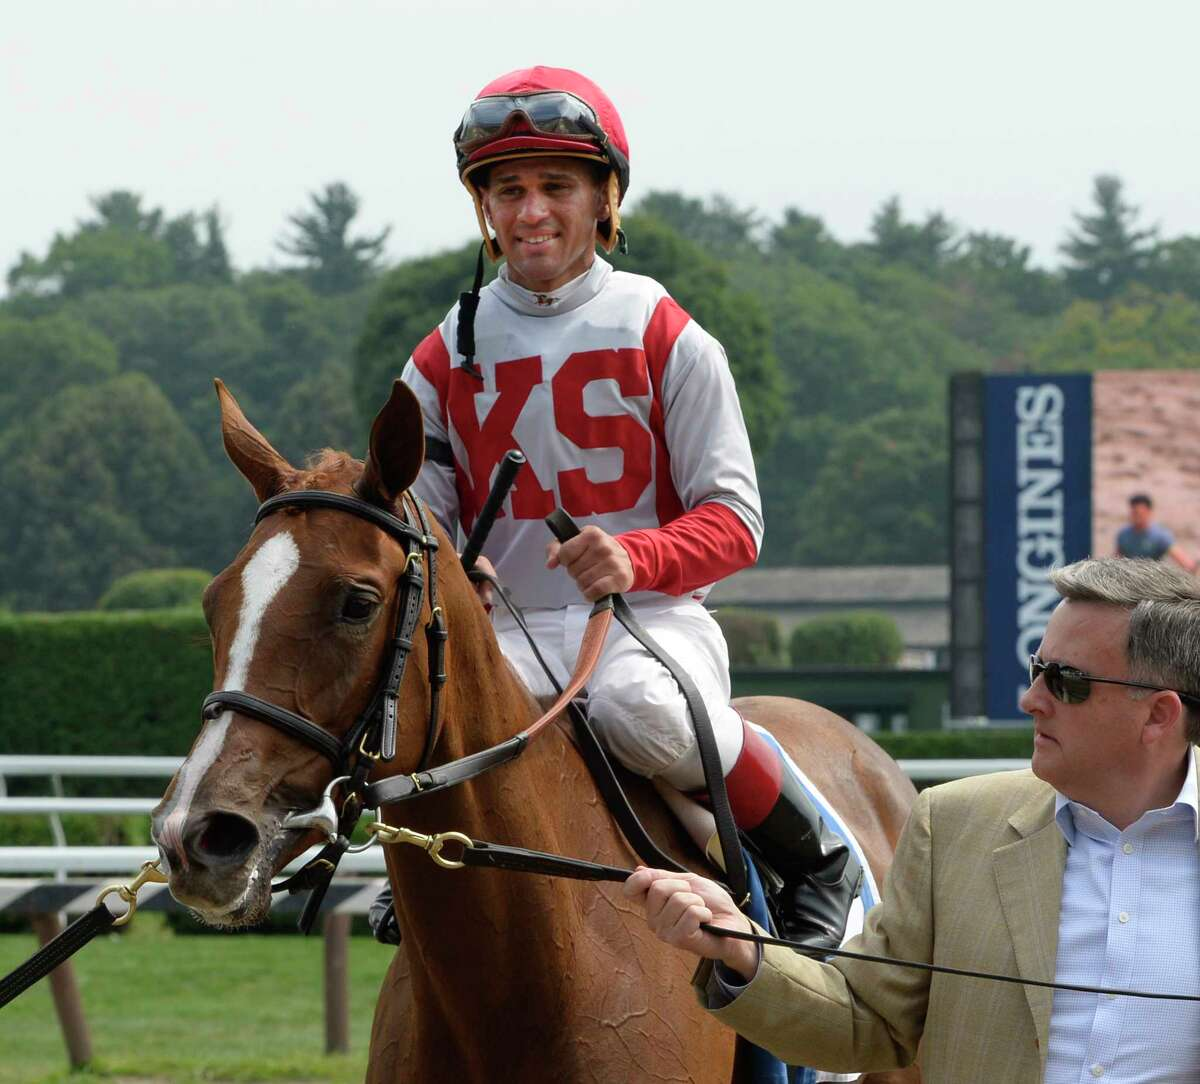 Partisan Politics with jockey Javier Castellano is lead to the winner's circle by co-owner William Lawrence after winning the 10th running of P.G. Johnson stake Wednesday afternoon at the Saratoga Race Course on Heritage Day Aug. 27, 2014 in Saratoga Springs, N.Y. Jockey Castellano won at least four races on the day. (Skip Dickstein/Times Union)